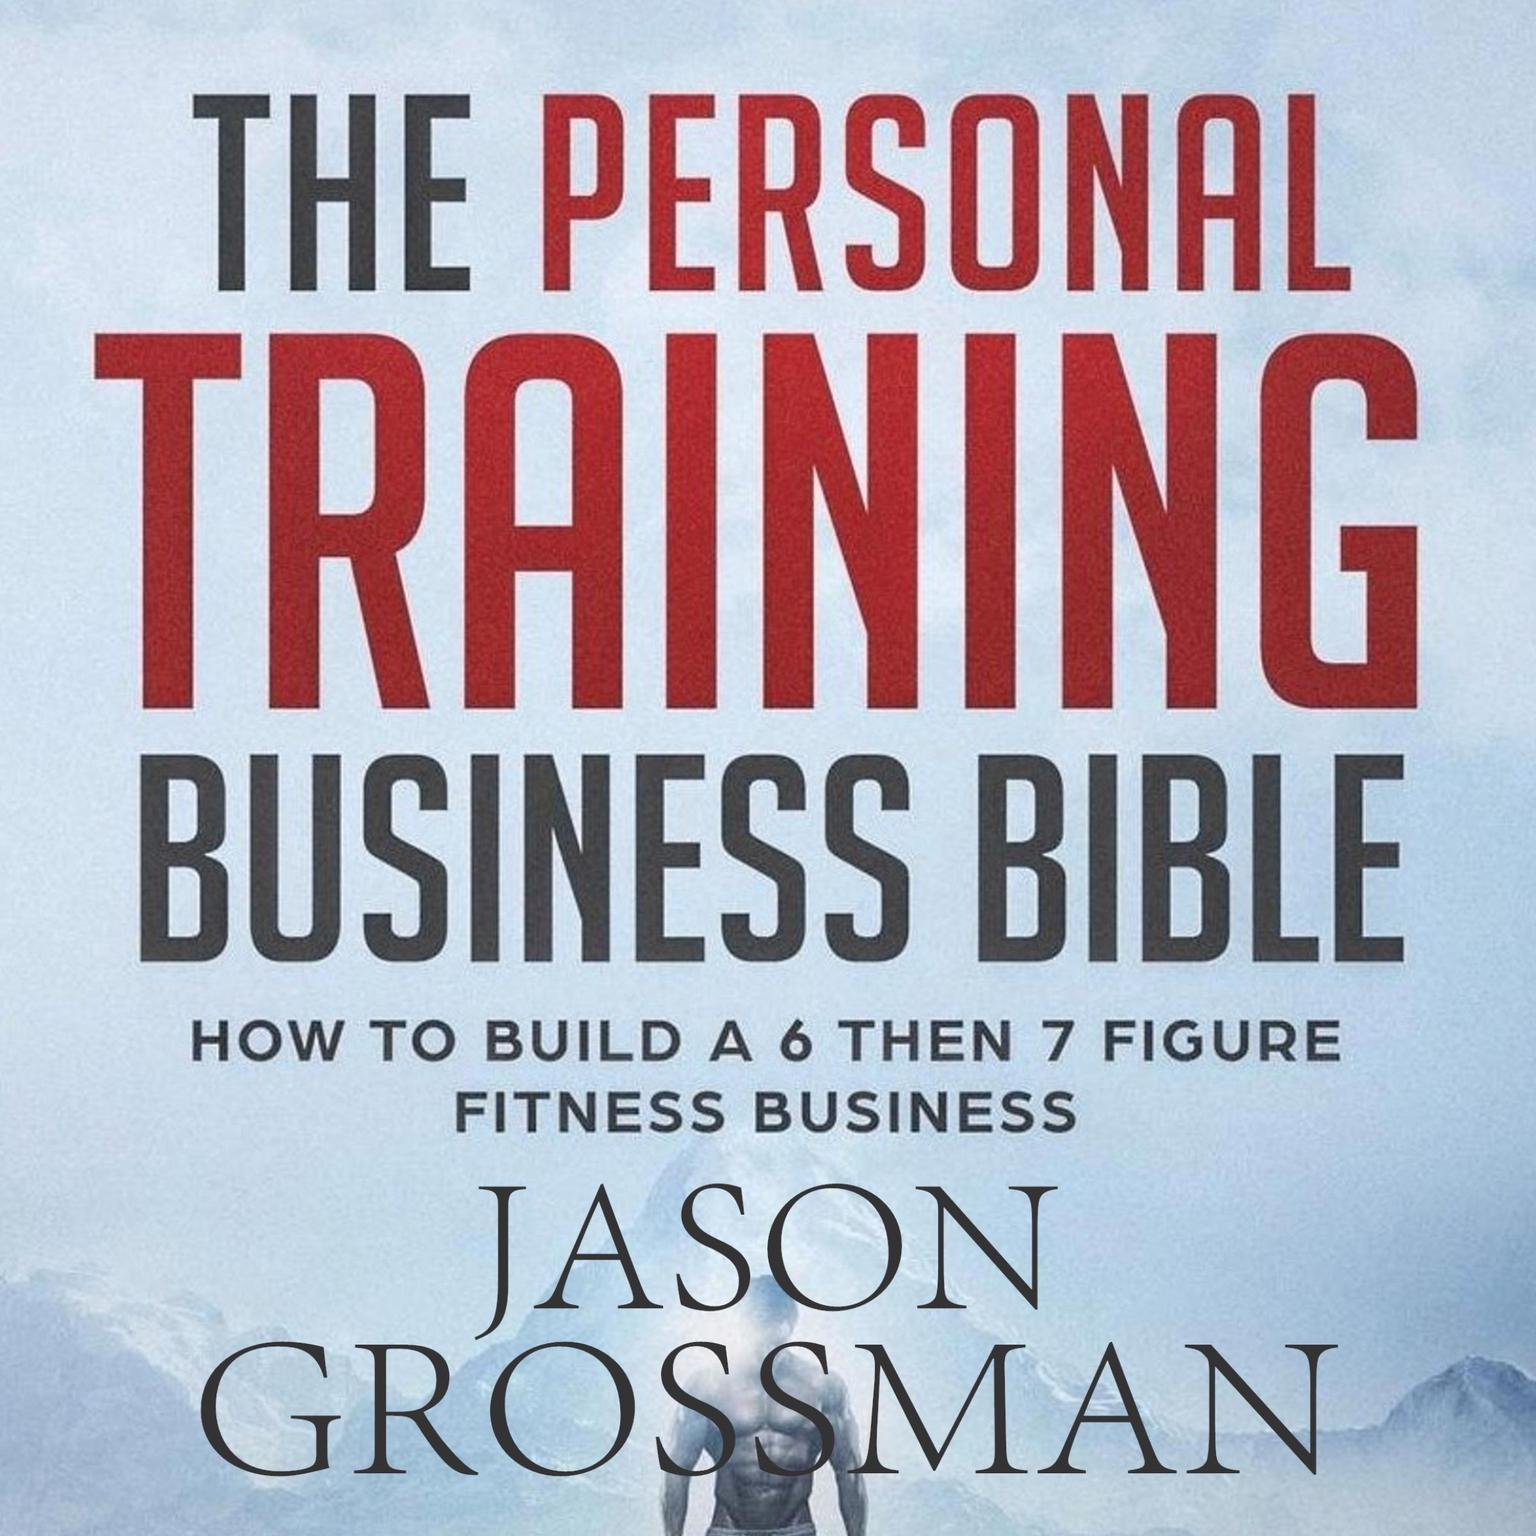 The Personal Training Business Bible Audiobook, by Jason Grossman